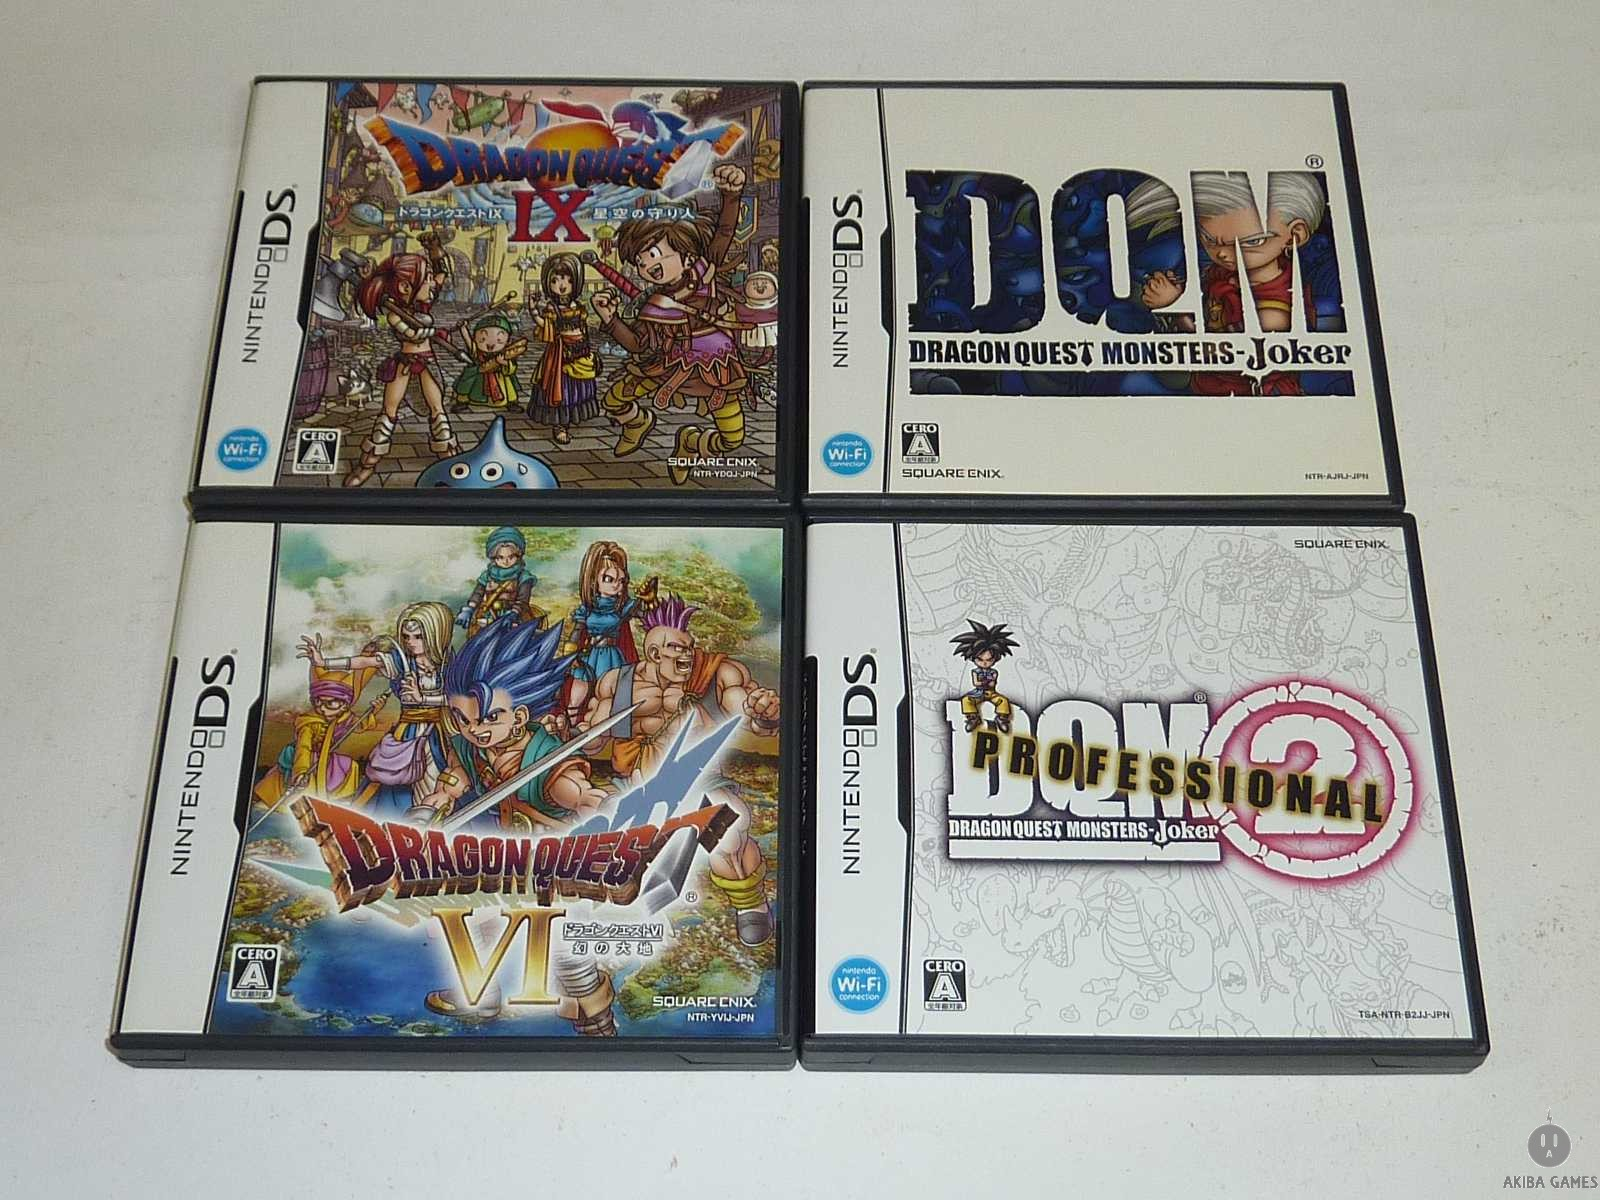 [DS] Dragon Quest (VI+IX+Monster joker1+2) 4 Games Set